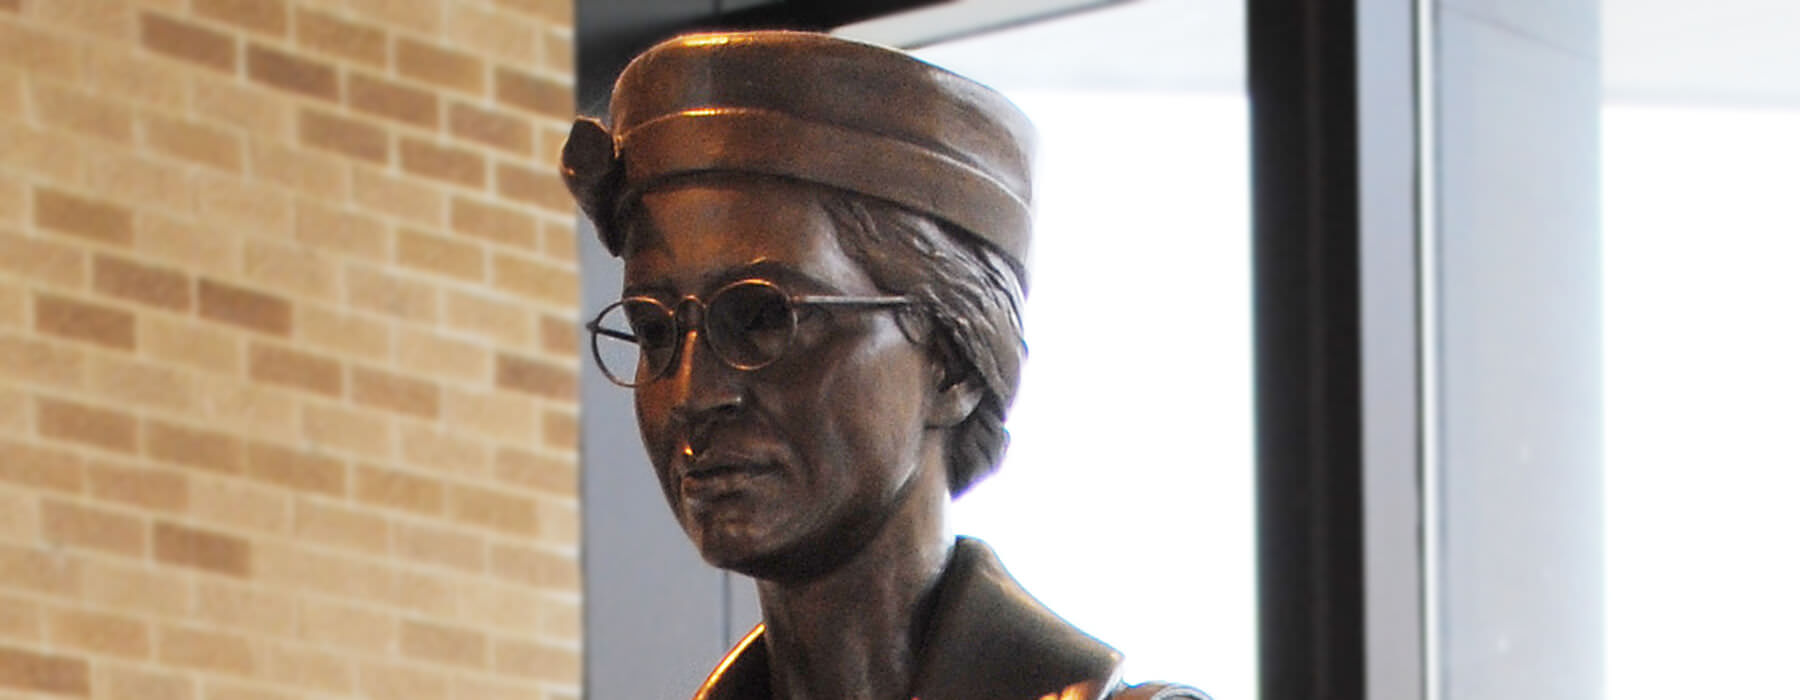 Close up of the Rosa Parks statue's head.